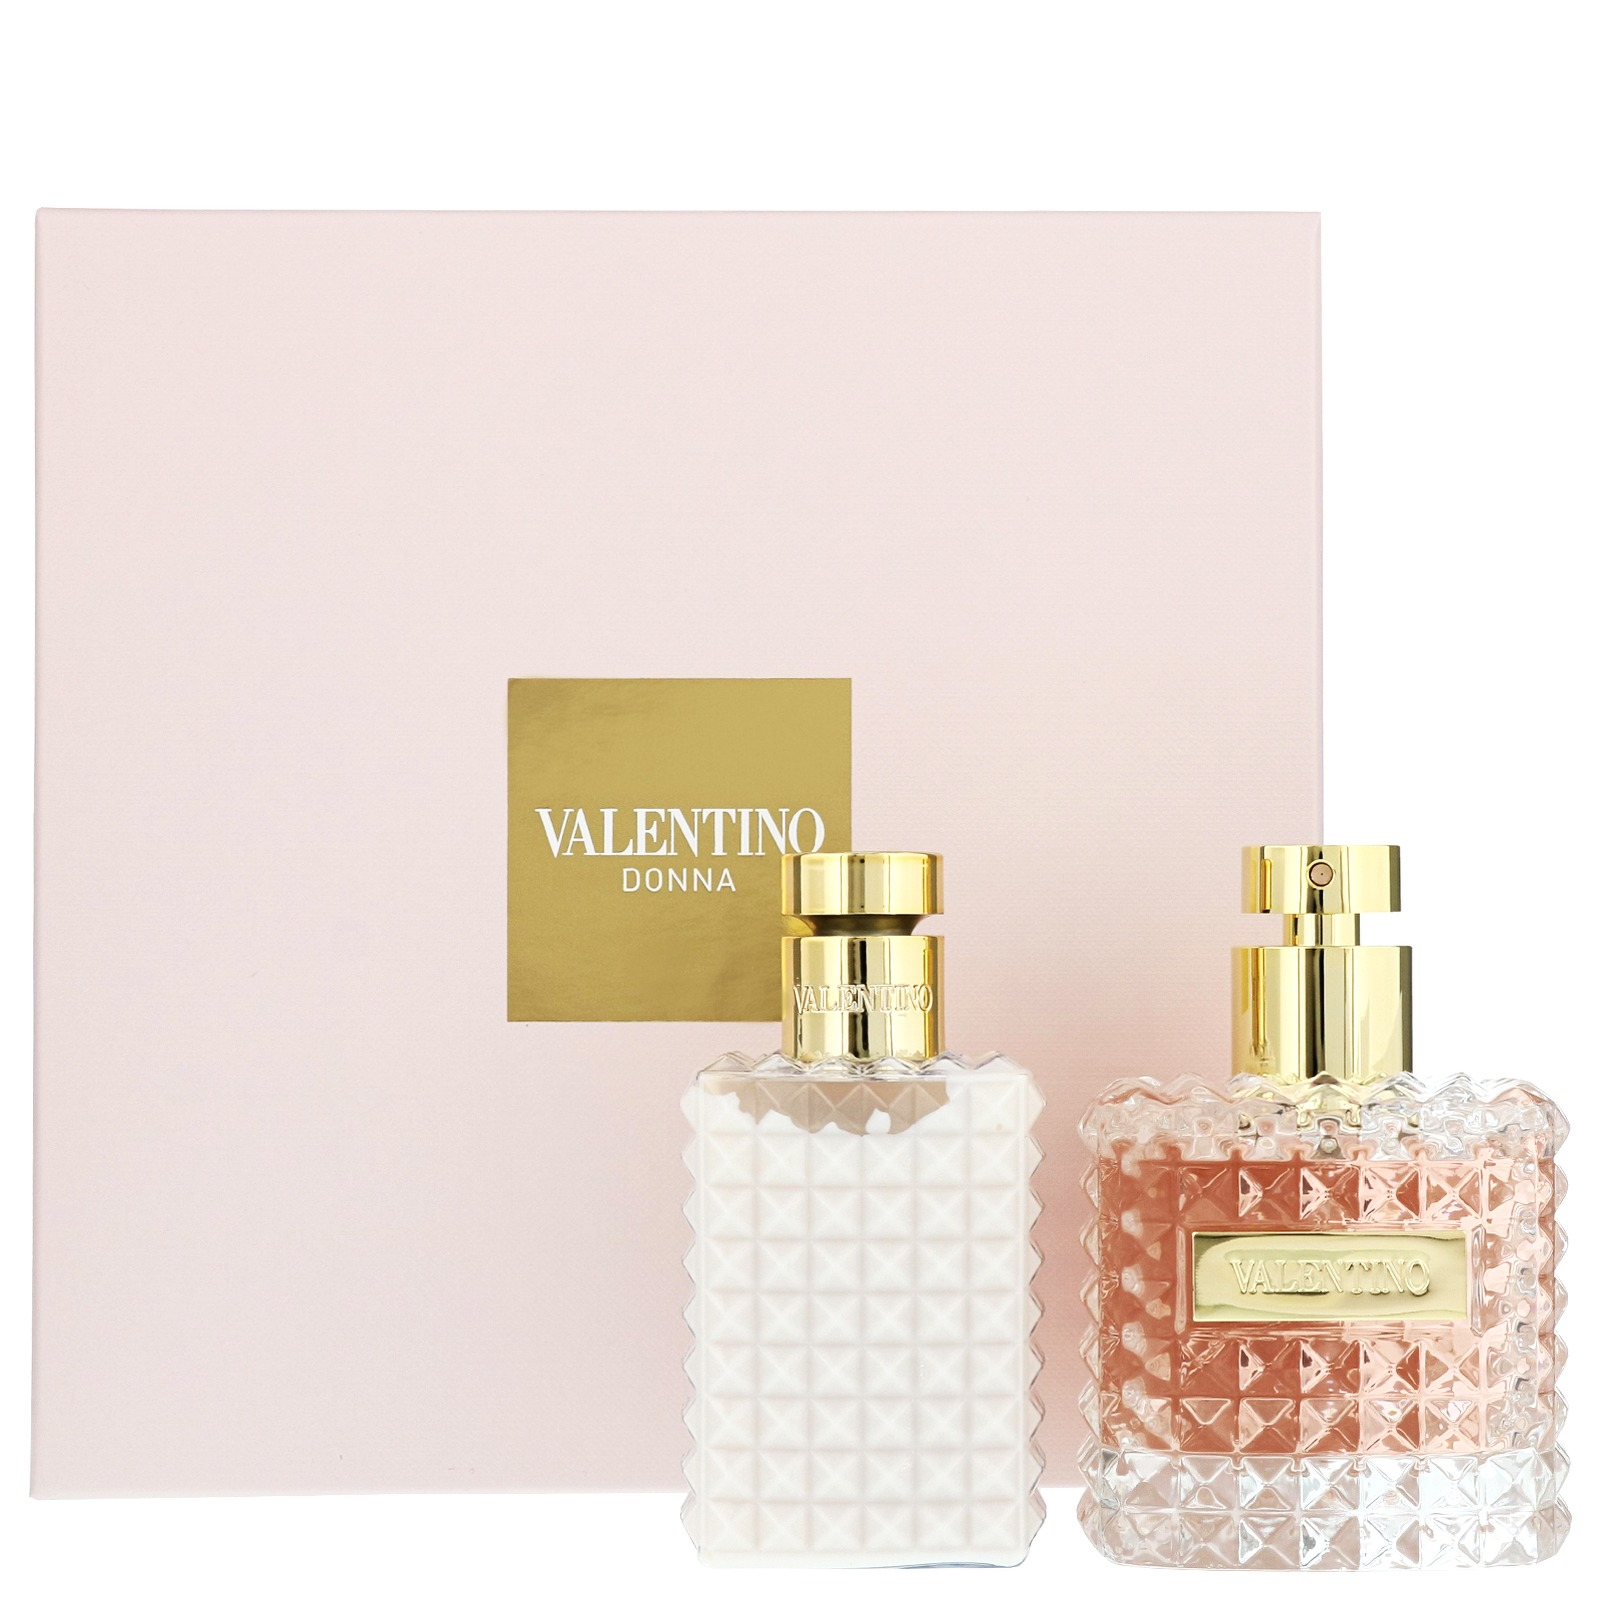 Eau De Parfum Spray 100ml Gift Set by Valentino